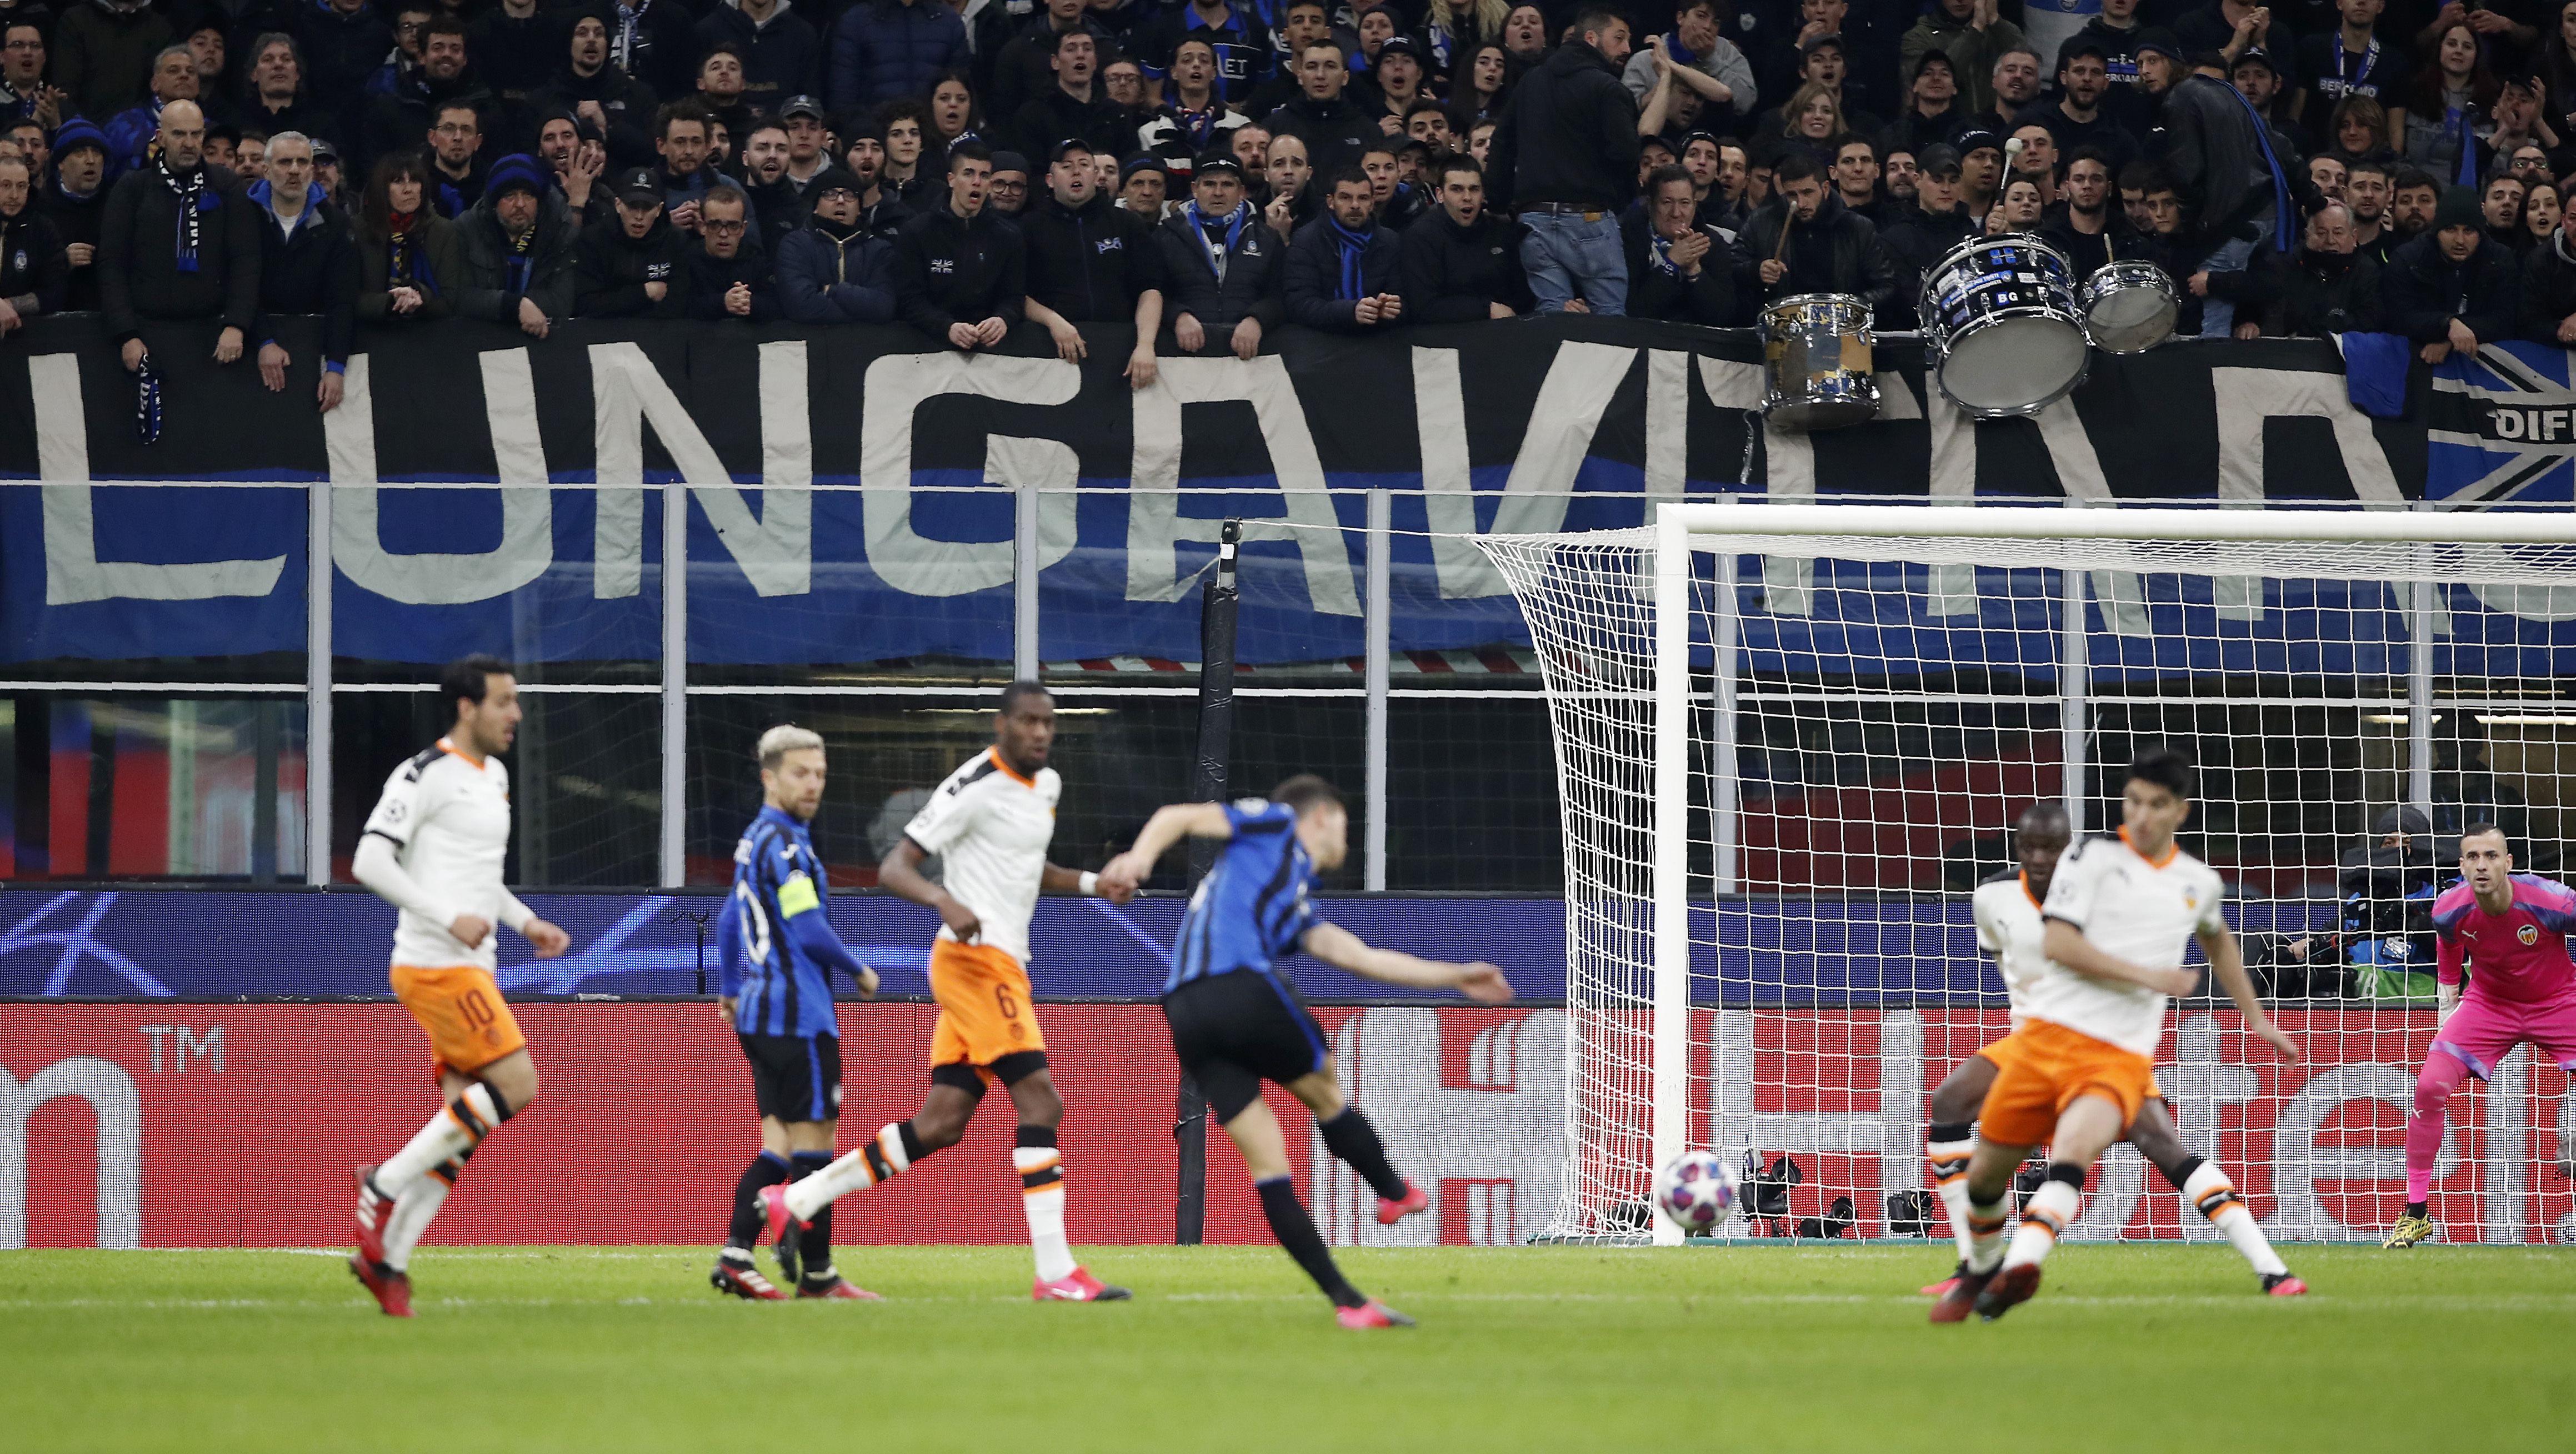 In this Wednesday, Feb. 19, 2020 file photo, spectators sit in the stands during the Champions League round of 16, first leg, soccer match between Atalanta and Valencia at the San Siro stadium in Milan, Italy. It was the biggest soccer game in Atalanta's history and a third of Bergamo's population made the short trip to Milan's famed San Siro Stadium to witness it.